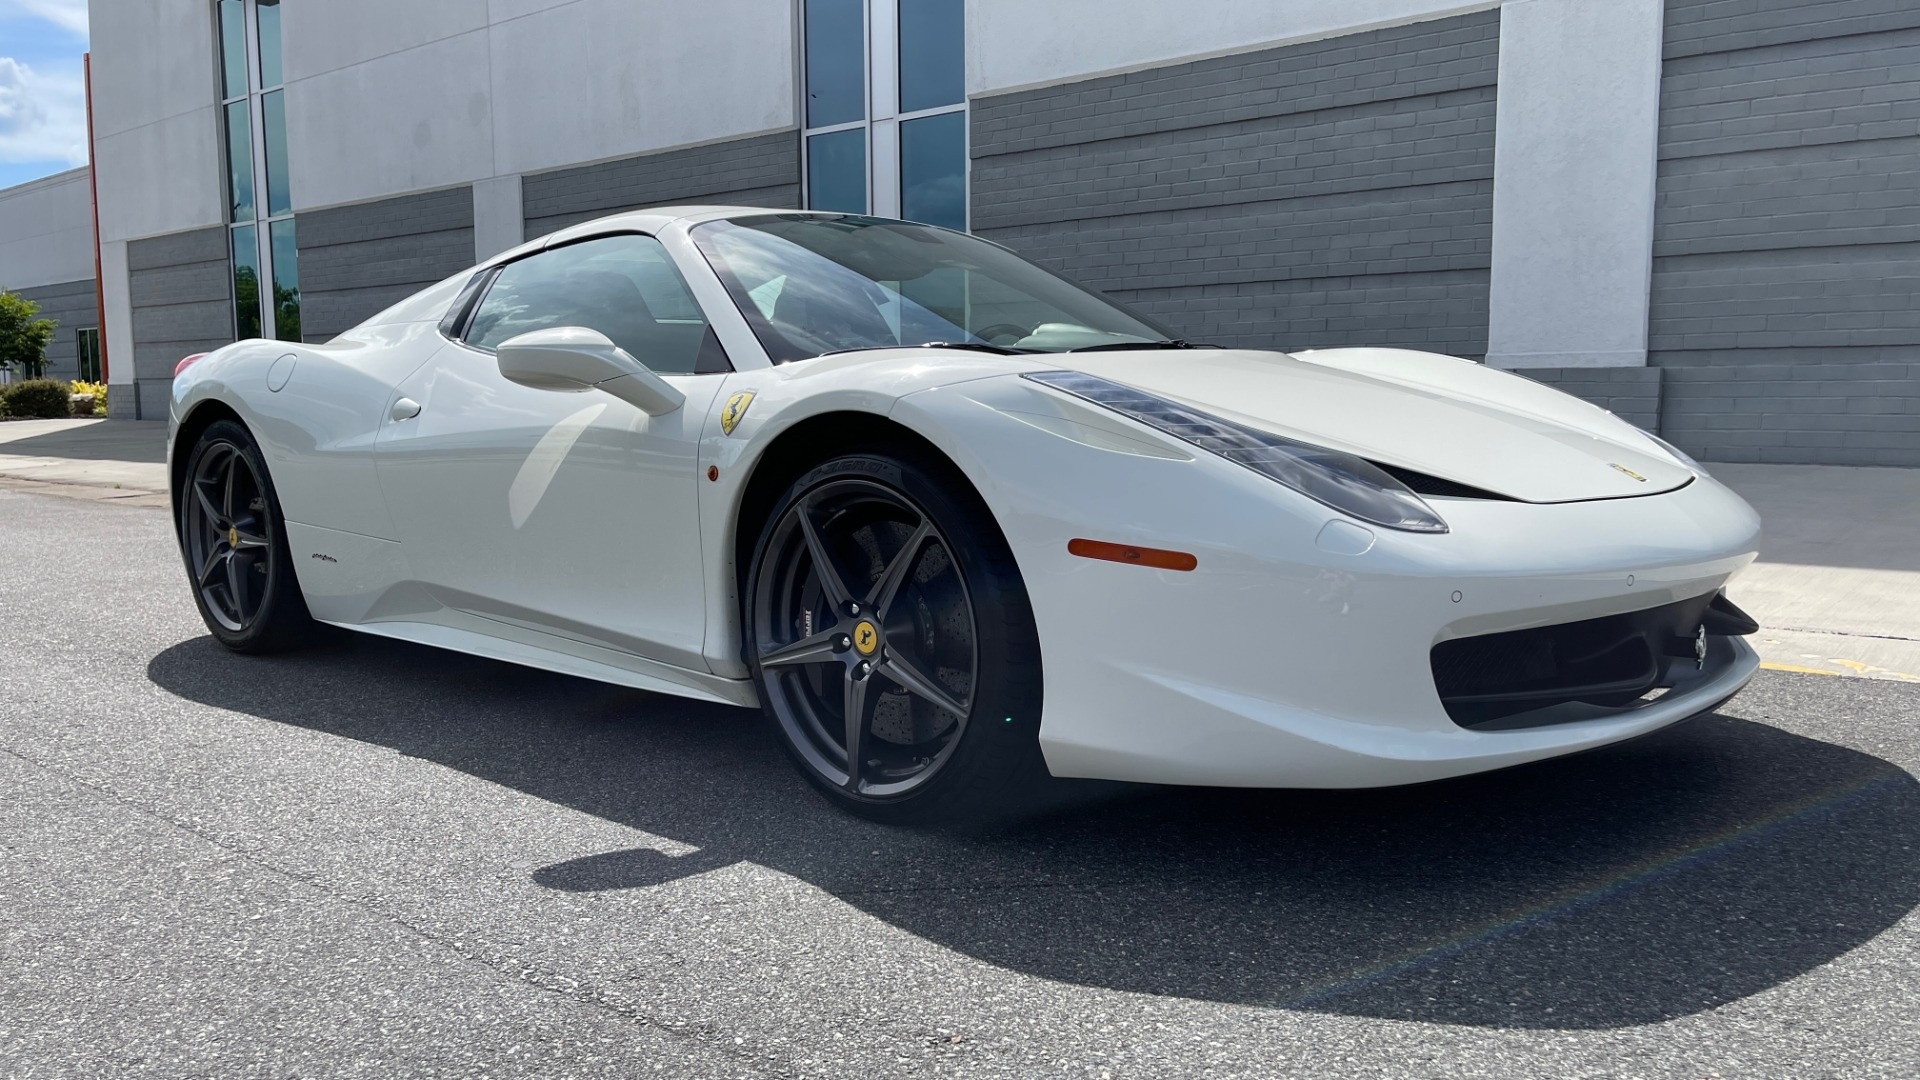 Used 2014 Ferrari 458 ITALIA SPIDER 570HP / F1 AUTO / CF SEATS / CARBON BRAKES / REARVIEW for sale $249,999 at Formula Imports in Charlotte NC 28227 7